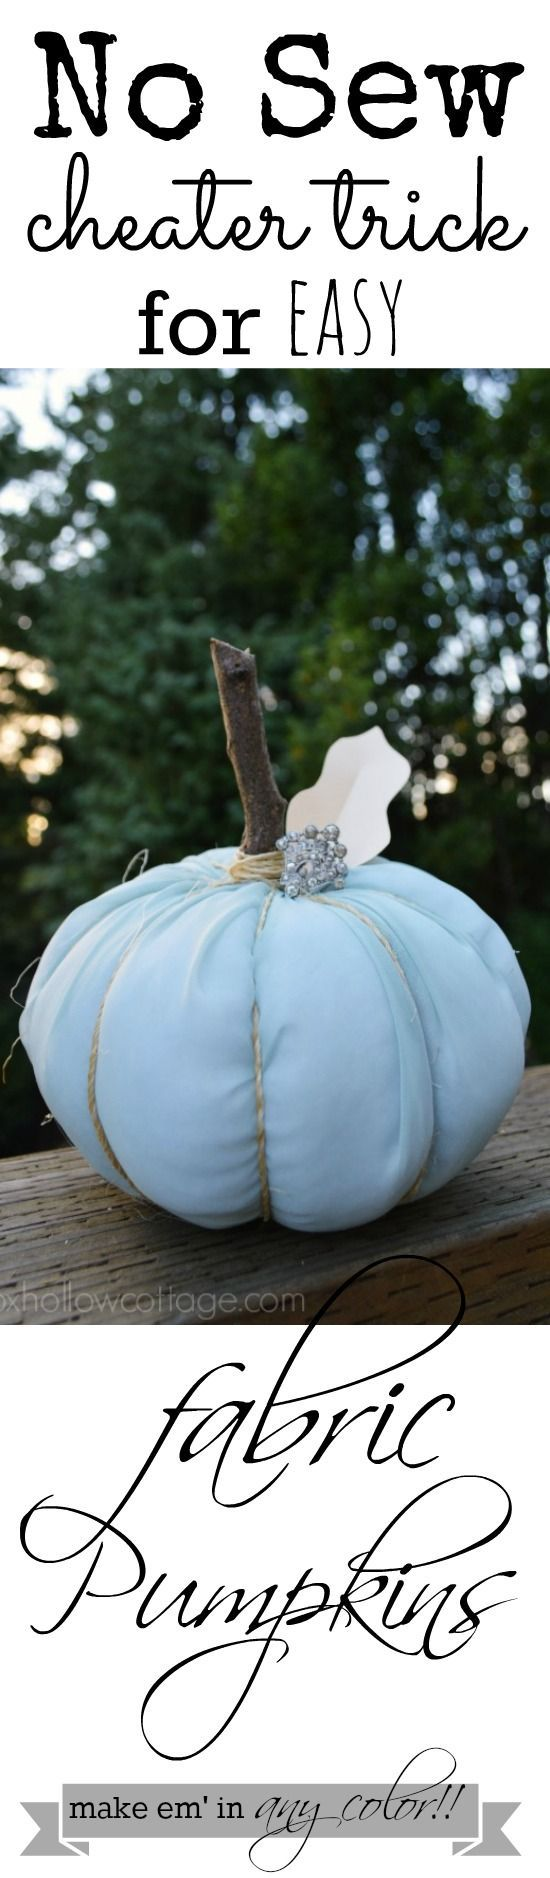 Try this DIY no sew fabric pumpkin tutorial. Use any color to match your decor!